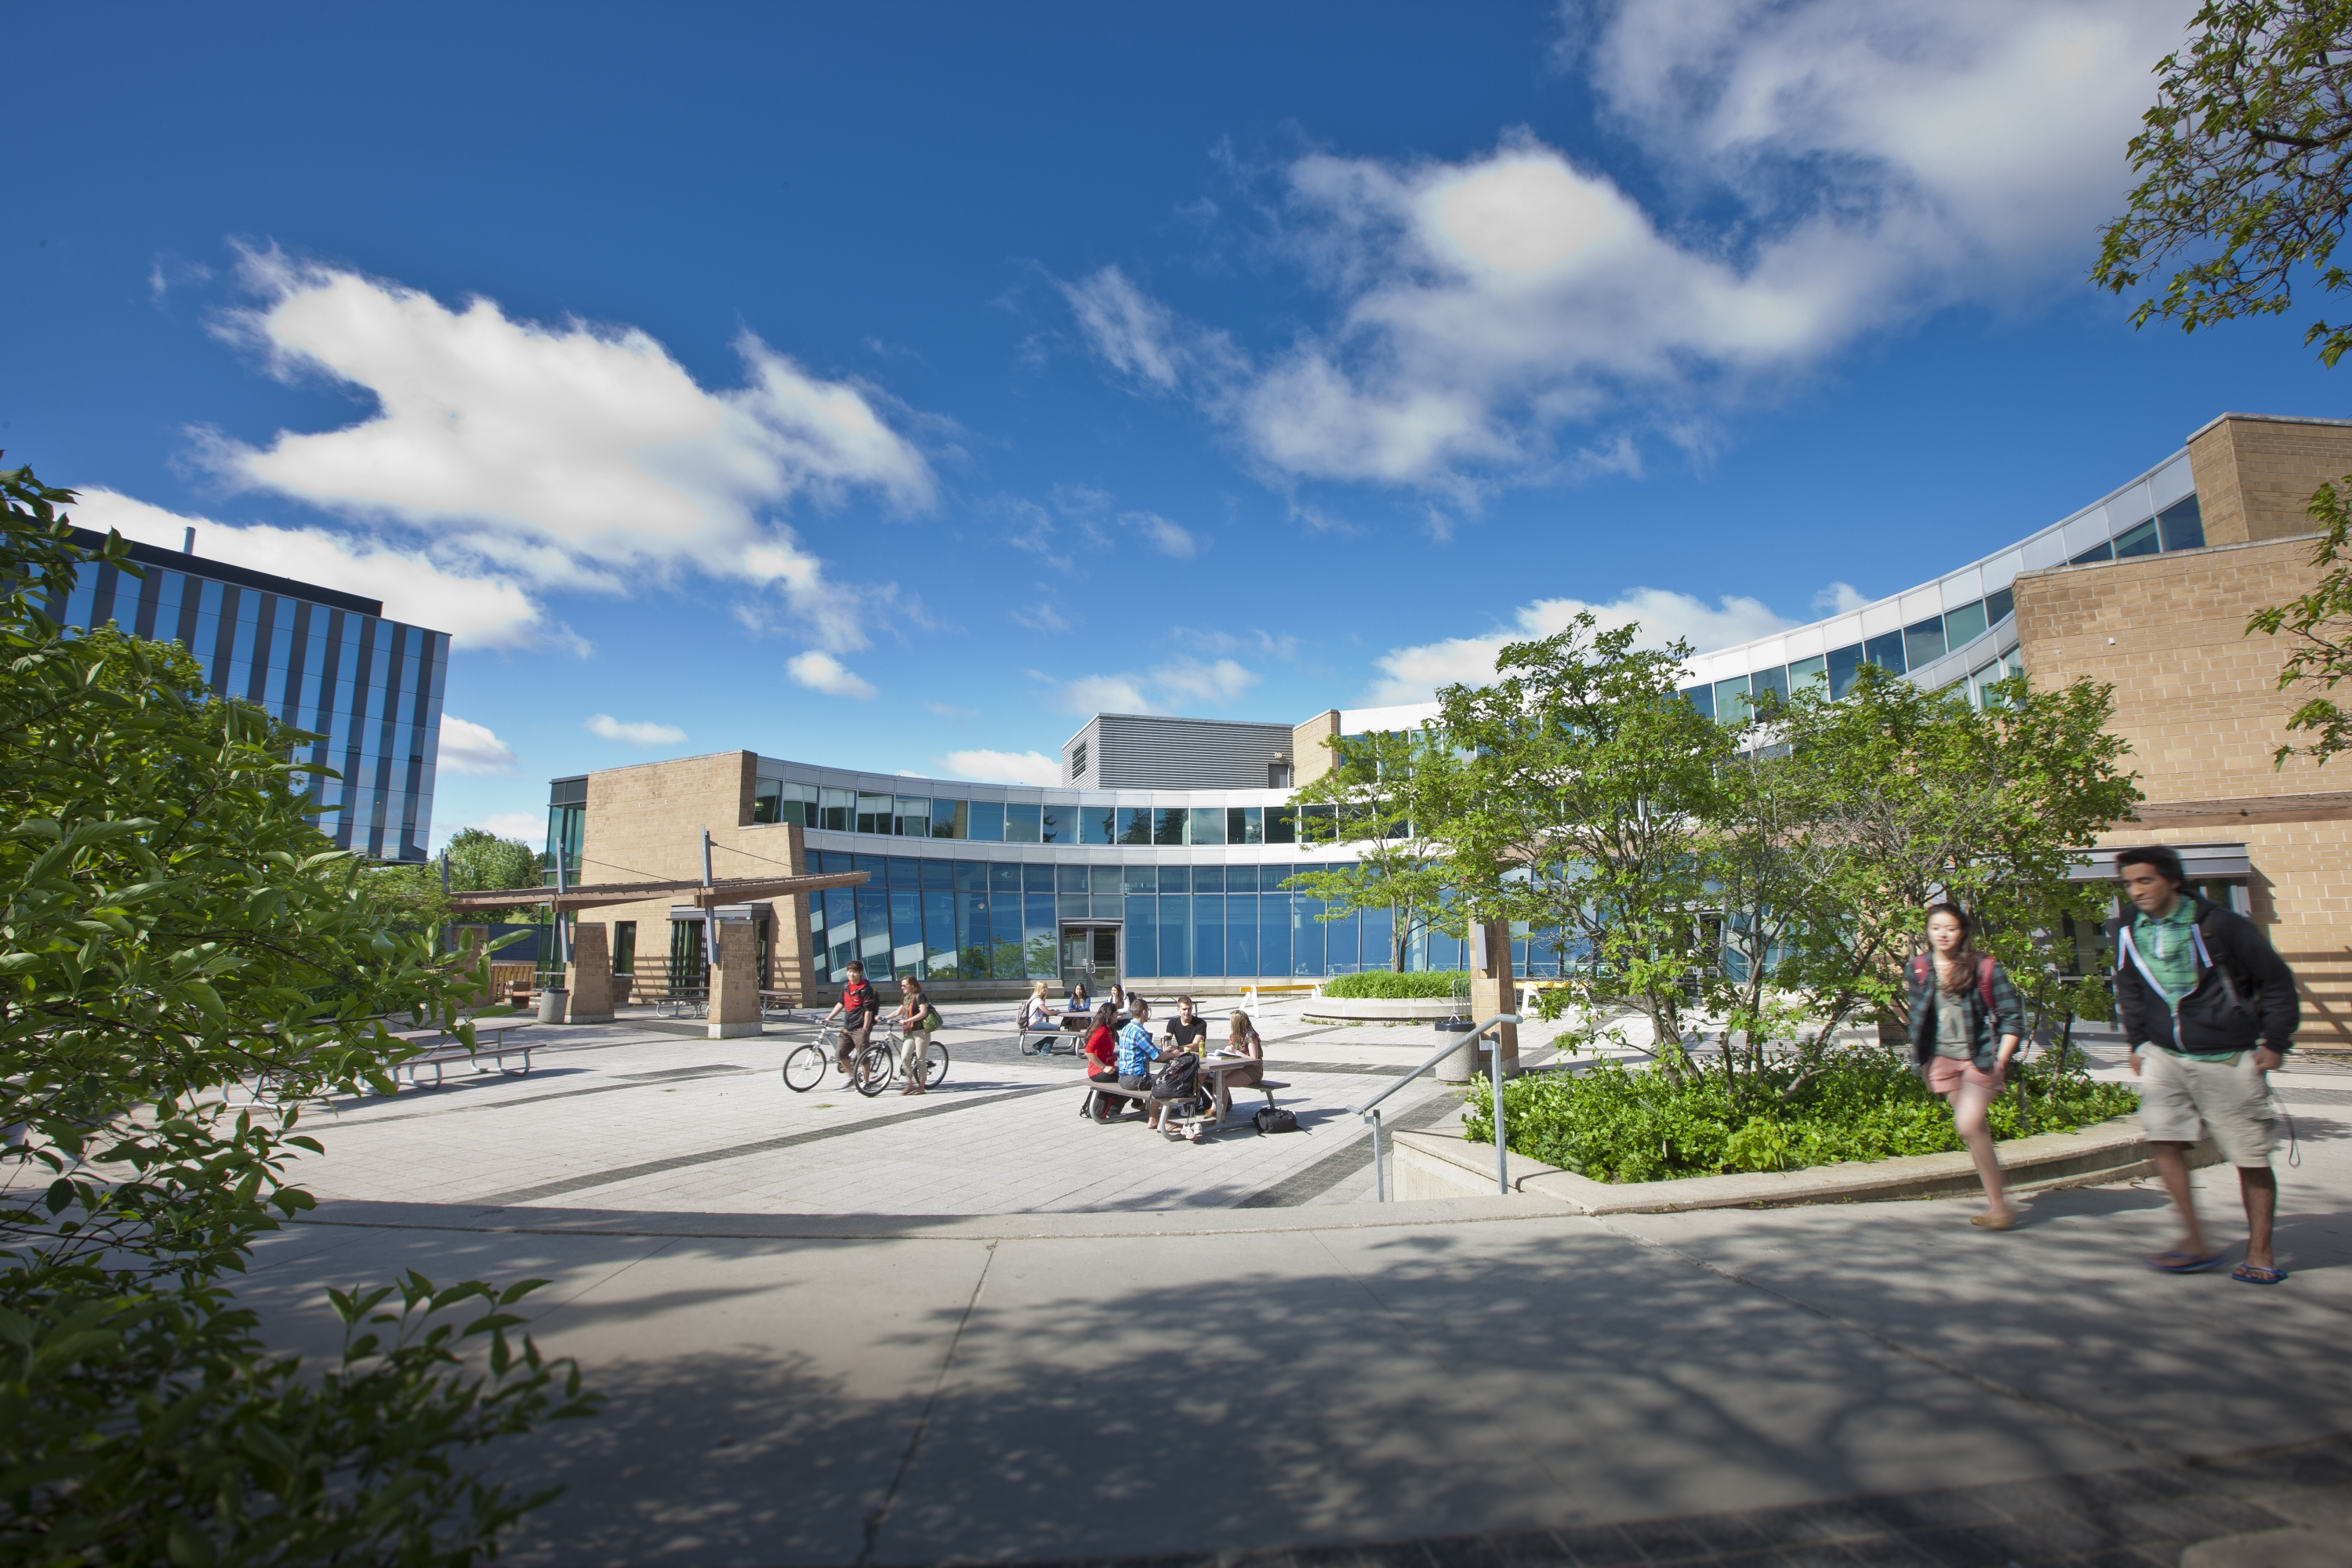 Student Life Centre courtyard on a sunny spring day.